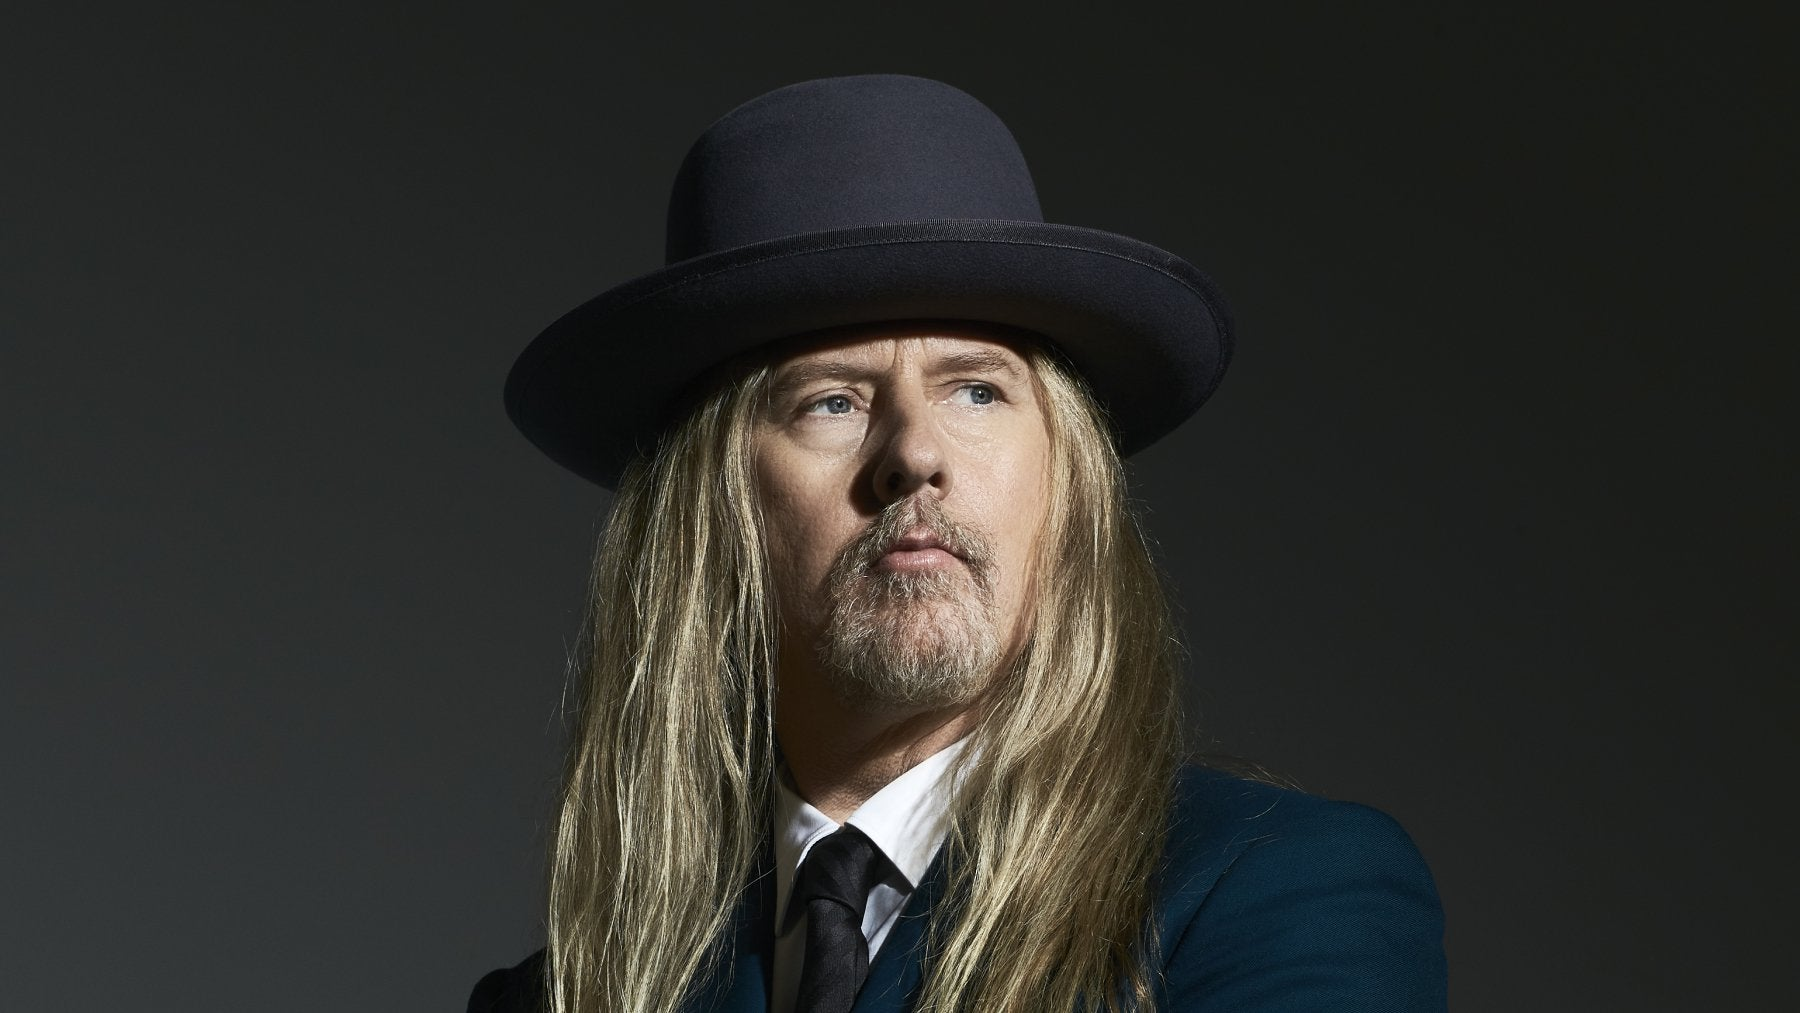 JERRY CANTRELL OF ALICE IN CHAINS 2021 promotional image